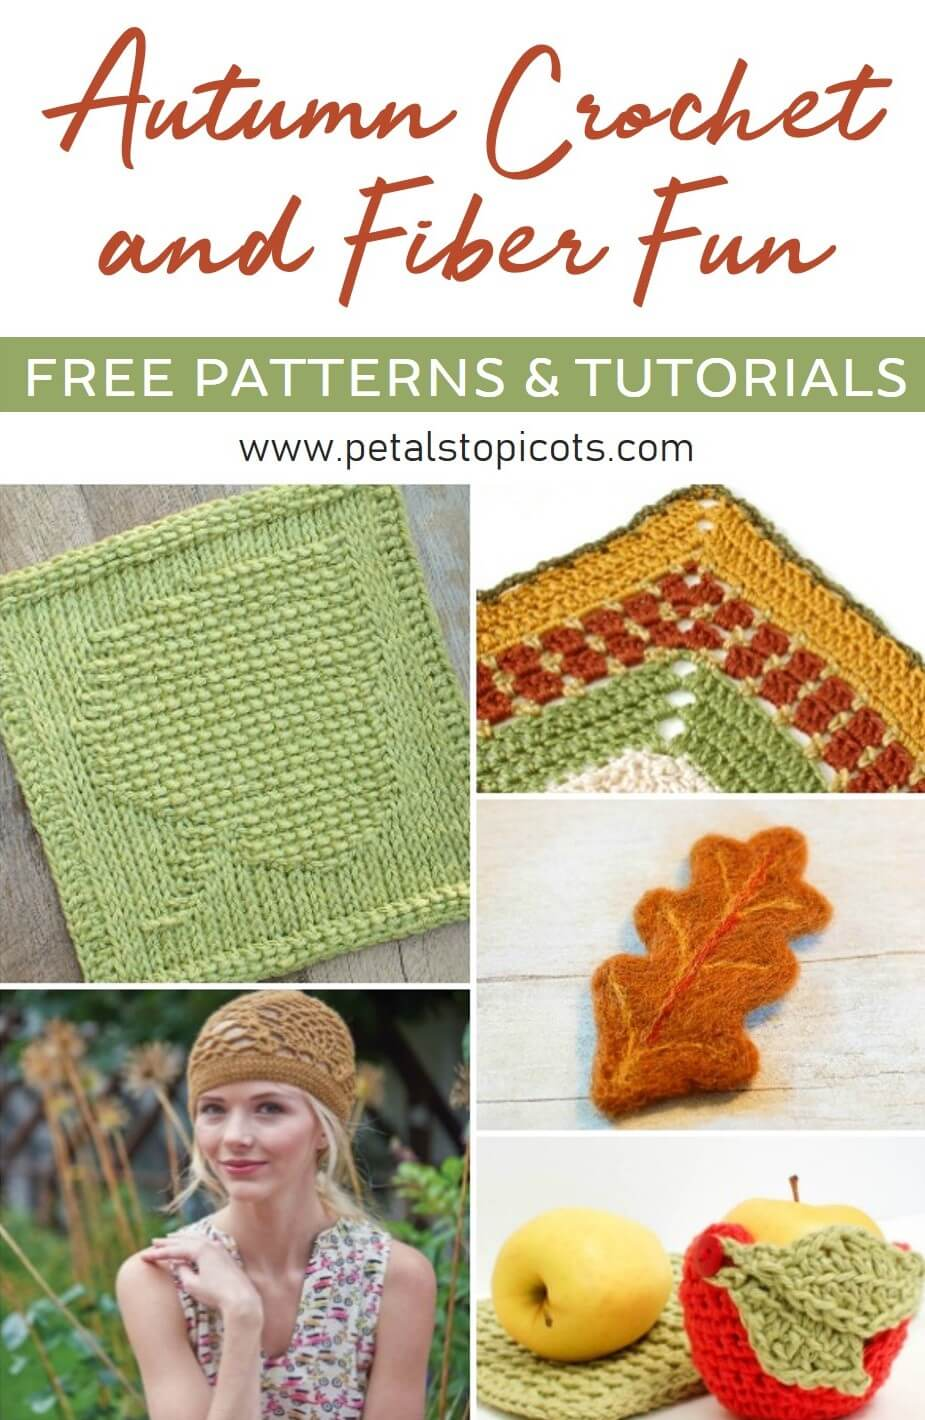 Are you ready for some Autumn Crochet and Fiber Fun?! I've rounded up some of my free Fall faves to share with you! #petalstopicots